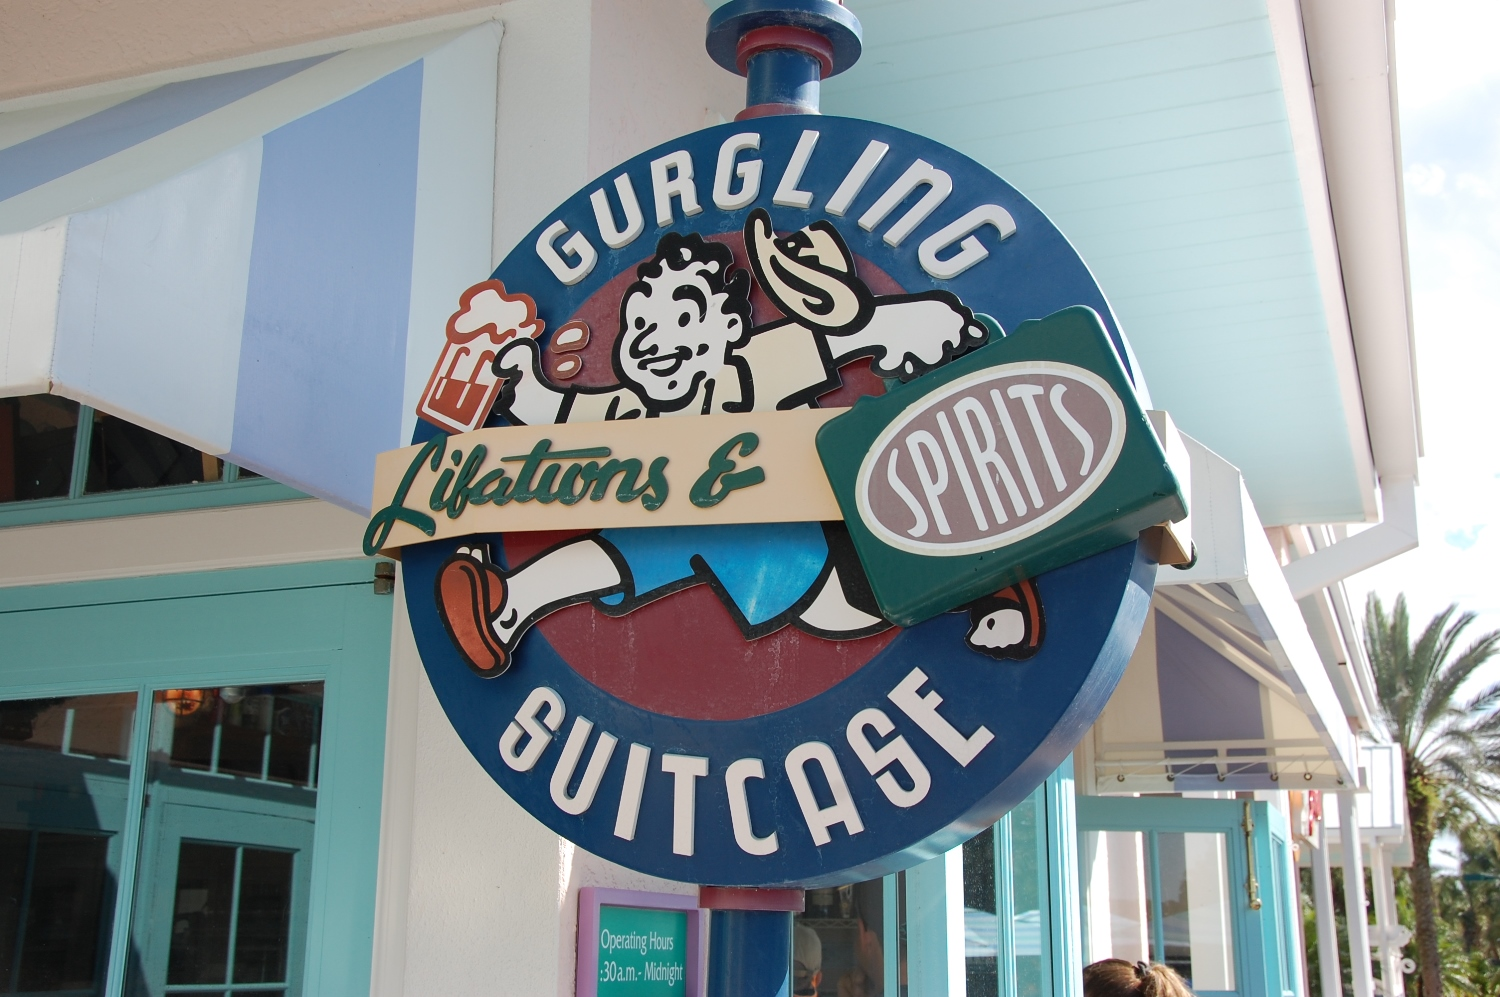 Gurgling Suitcase at Disney's Old Key West